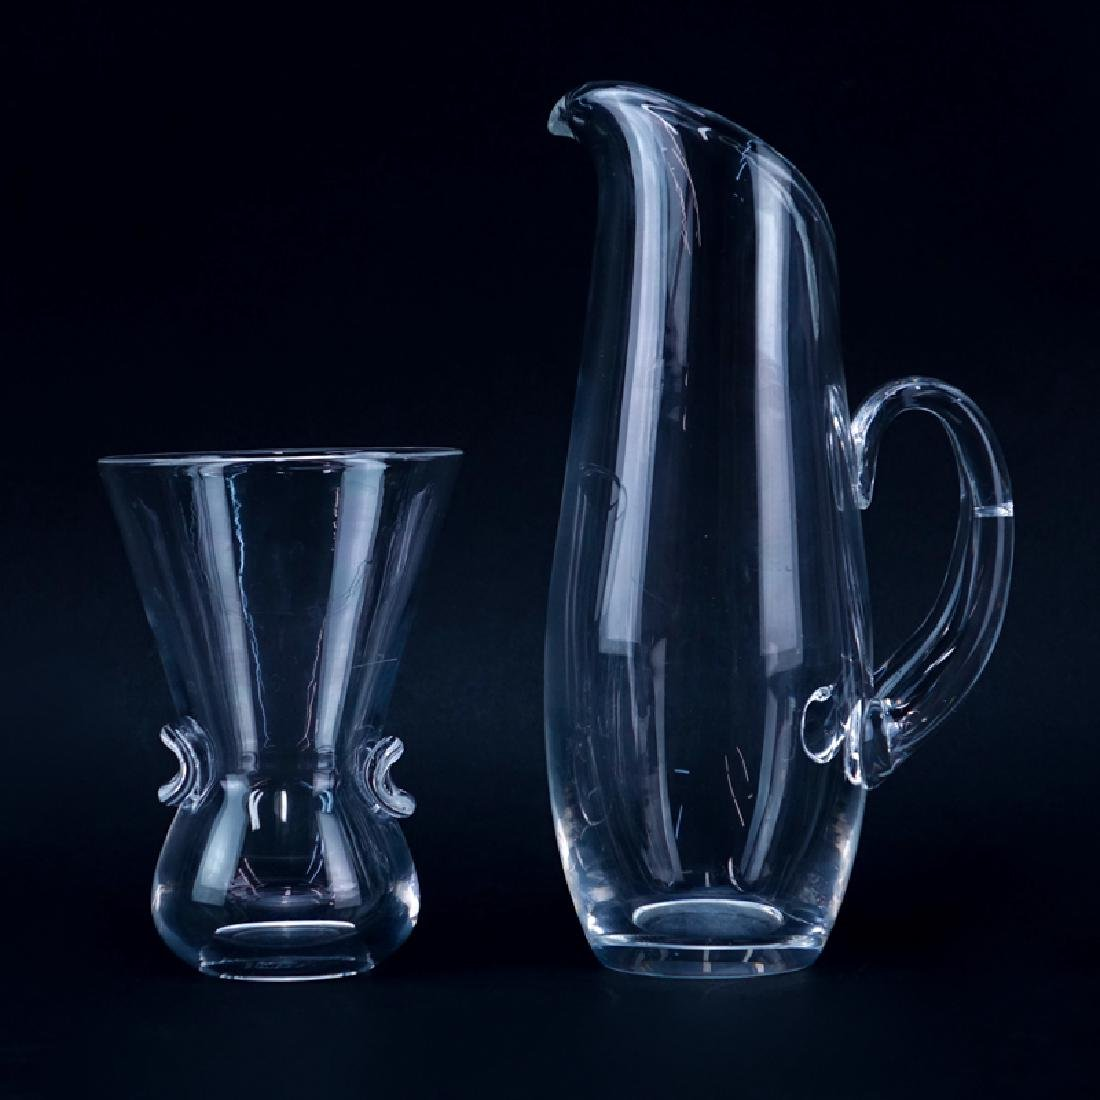 Two (2) Steuben Crystal Tableware. Includes: a carafe